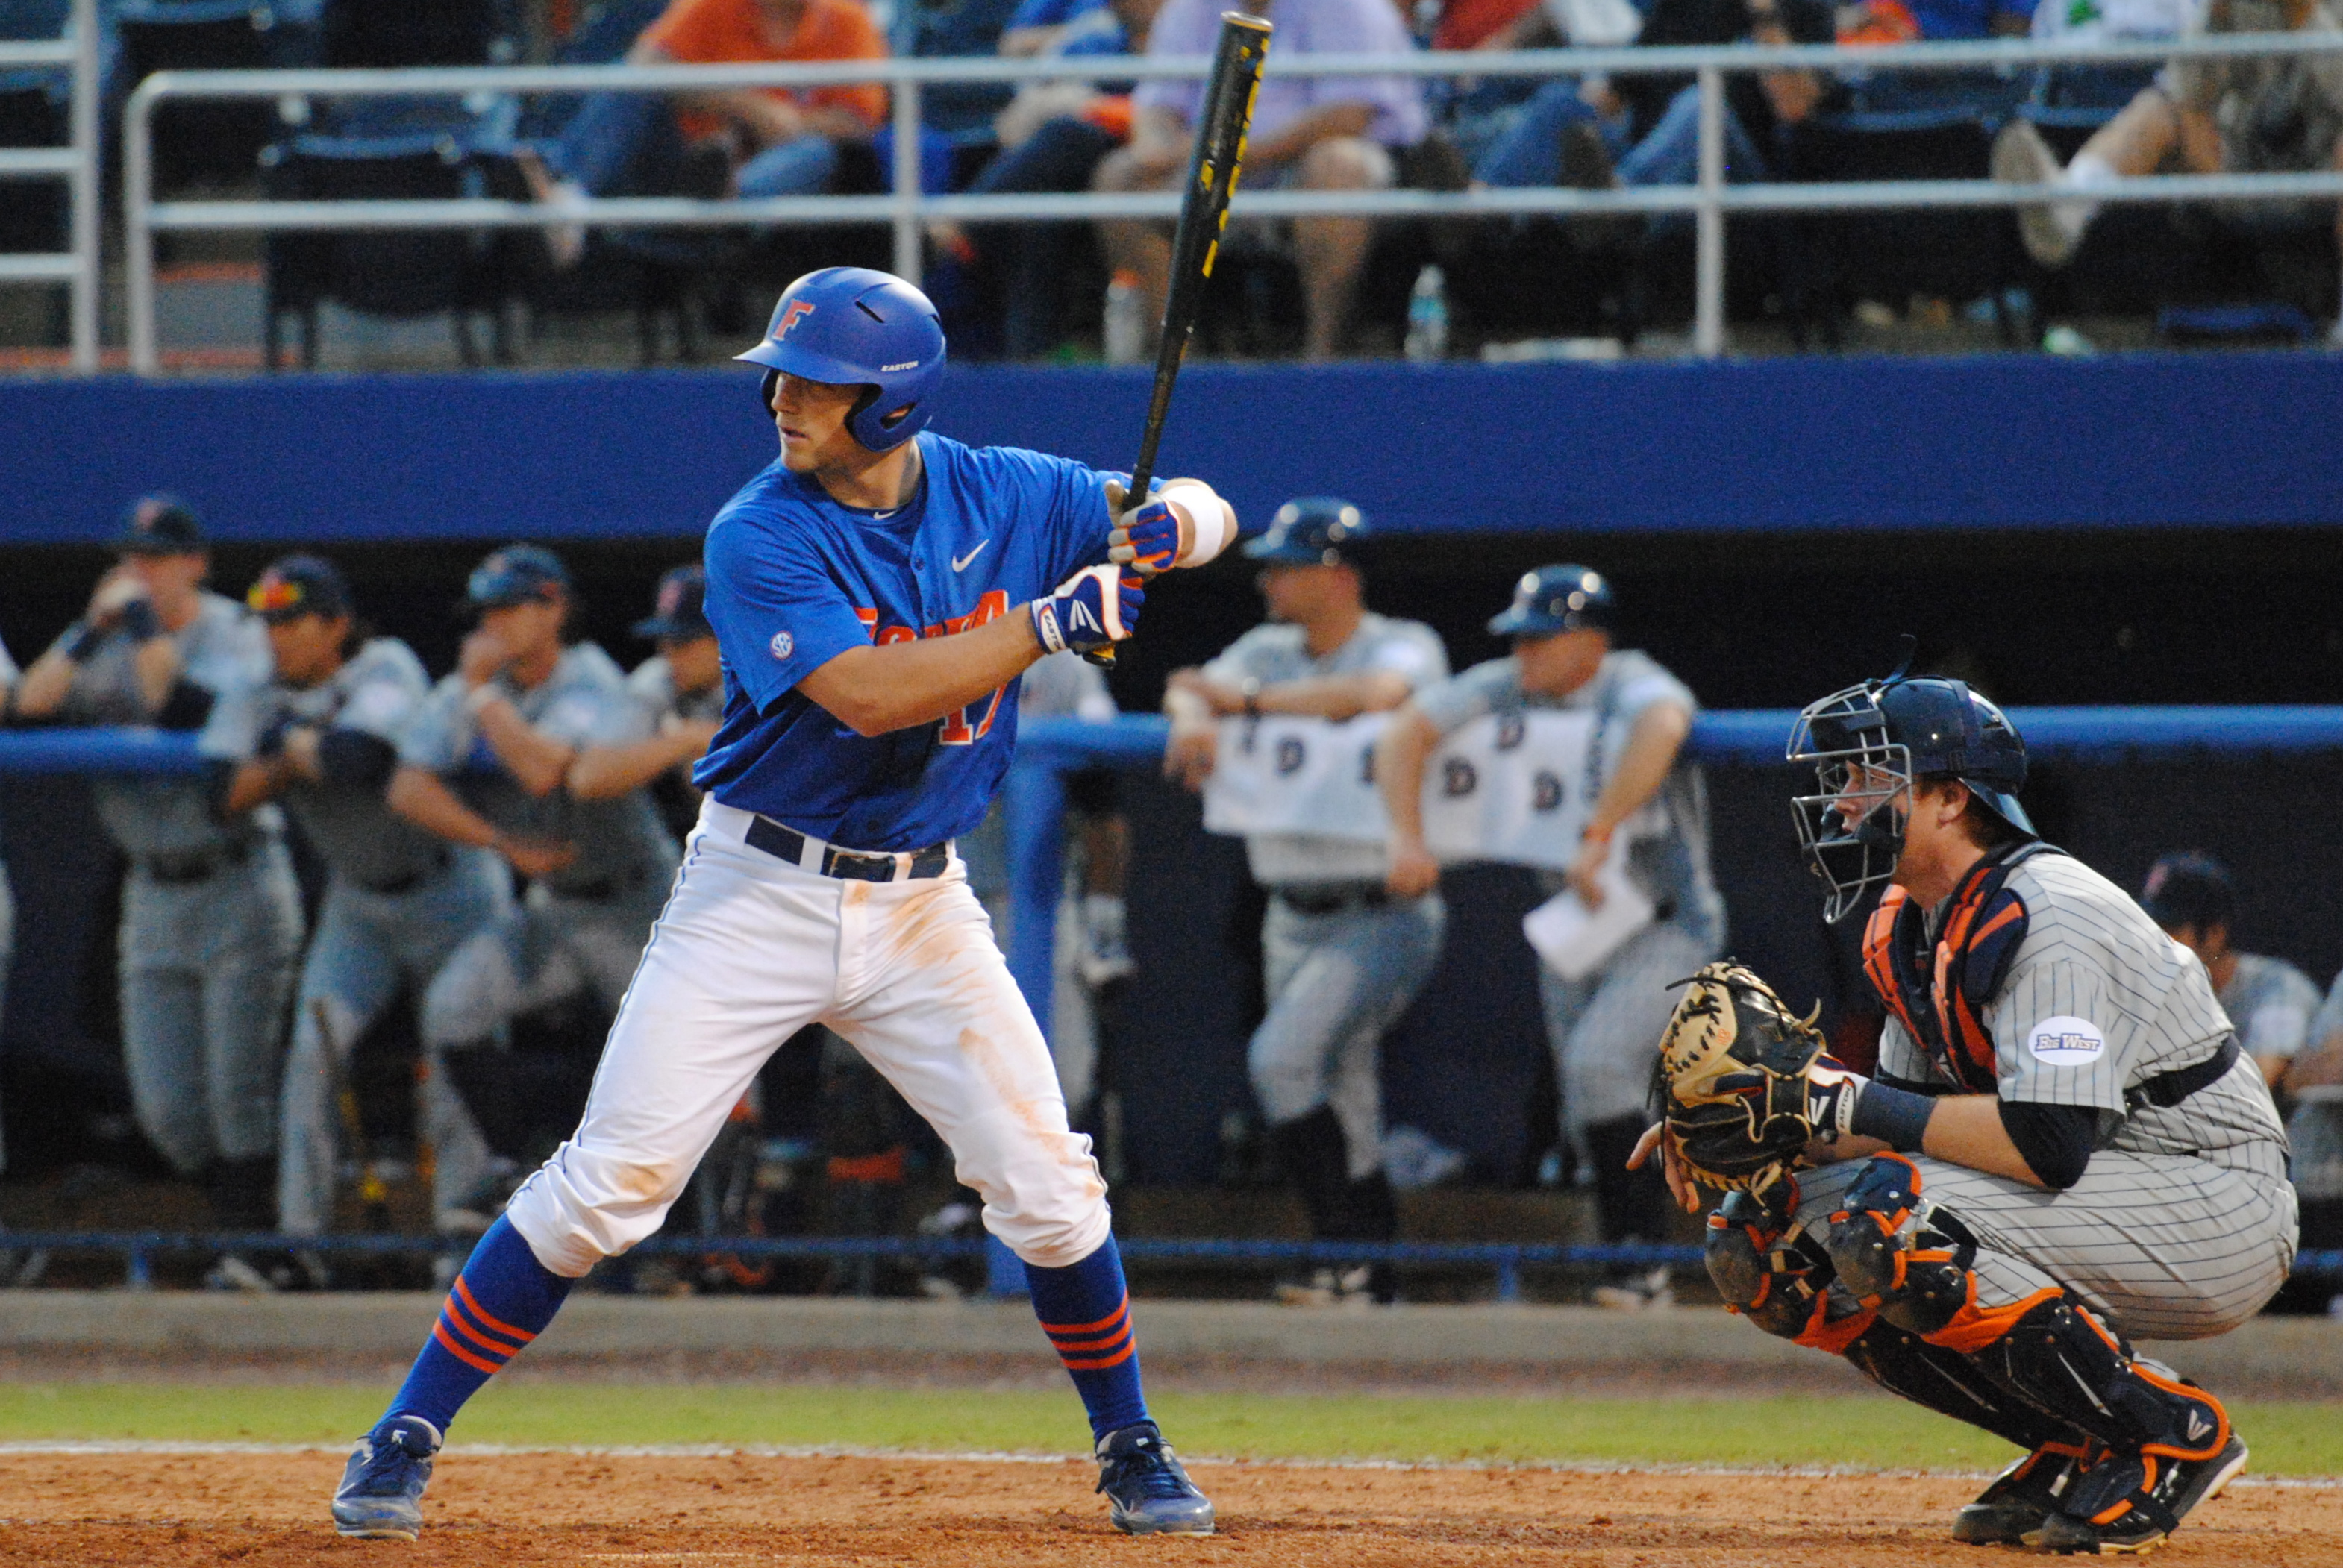 Gators Freshman Taylor Gushue up to bat.